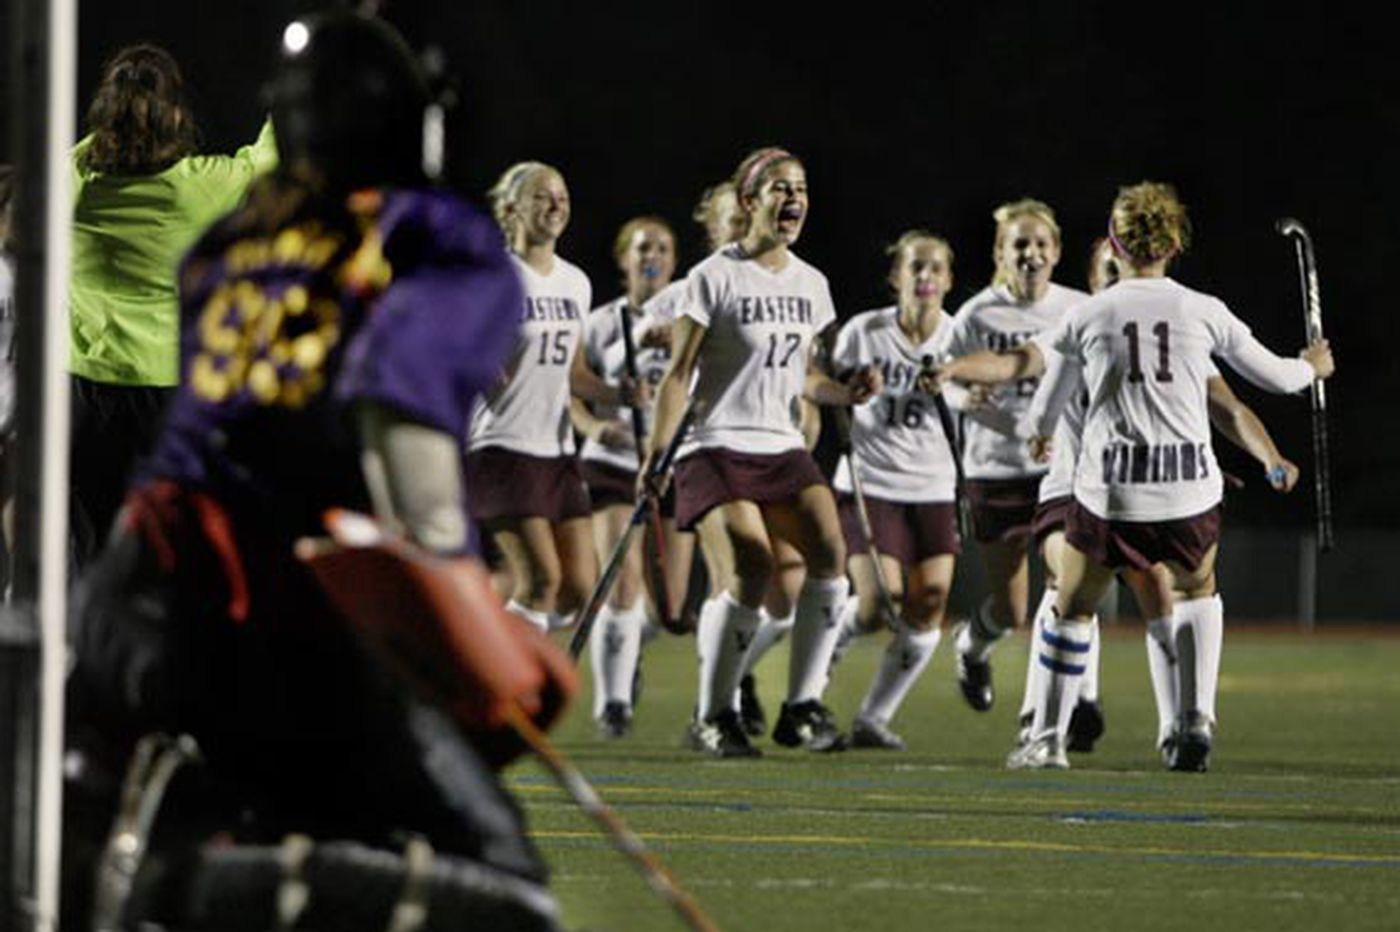 Wednesday's South Jersey roundup: Eastern advances to Tournament of Champions field hockey final, playing Oak Knoll for third straight year